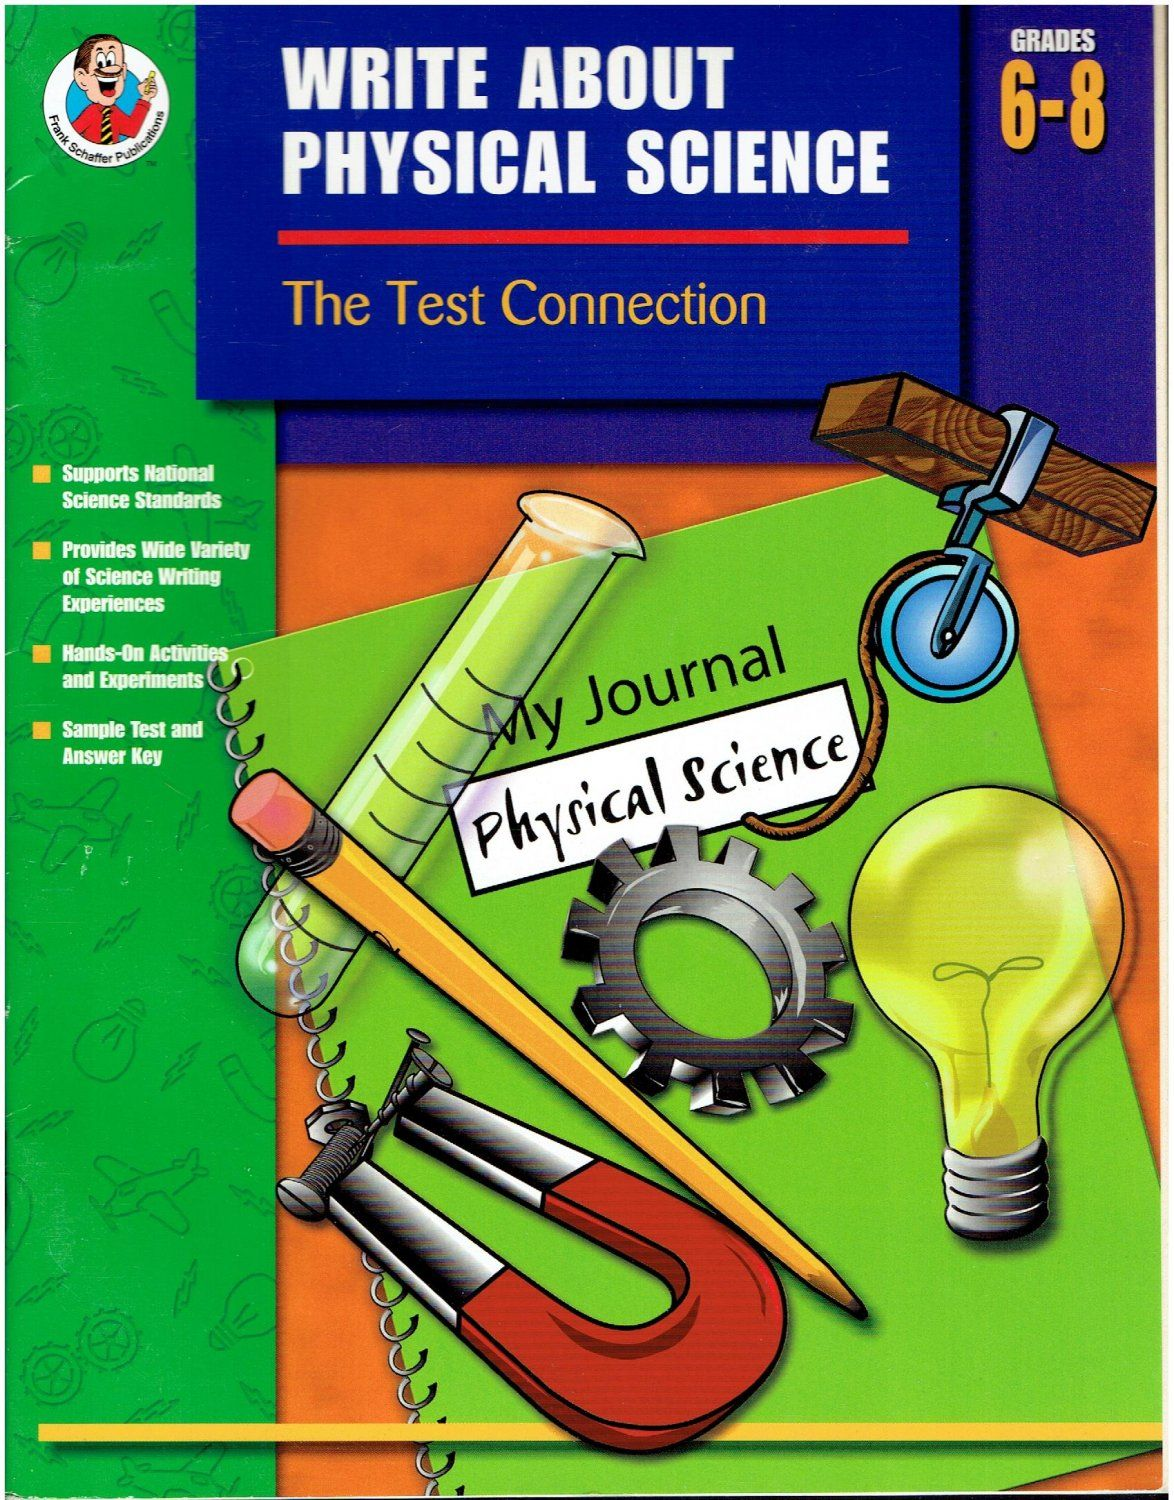 Worksheets Frank Schaffer Publications Worksheets Answers worksheets frank schaffer publications answers write about physical science grades 6 isbn